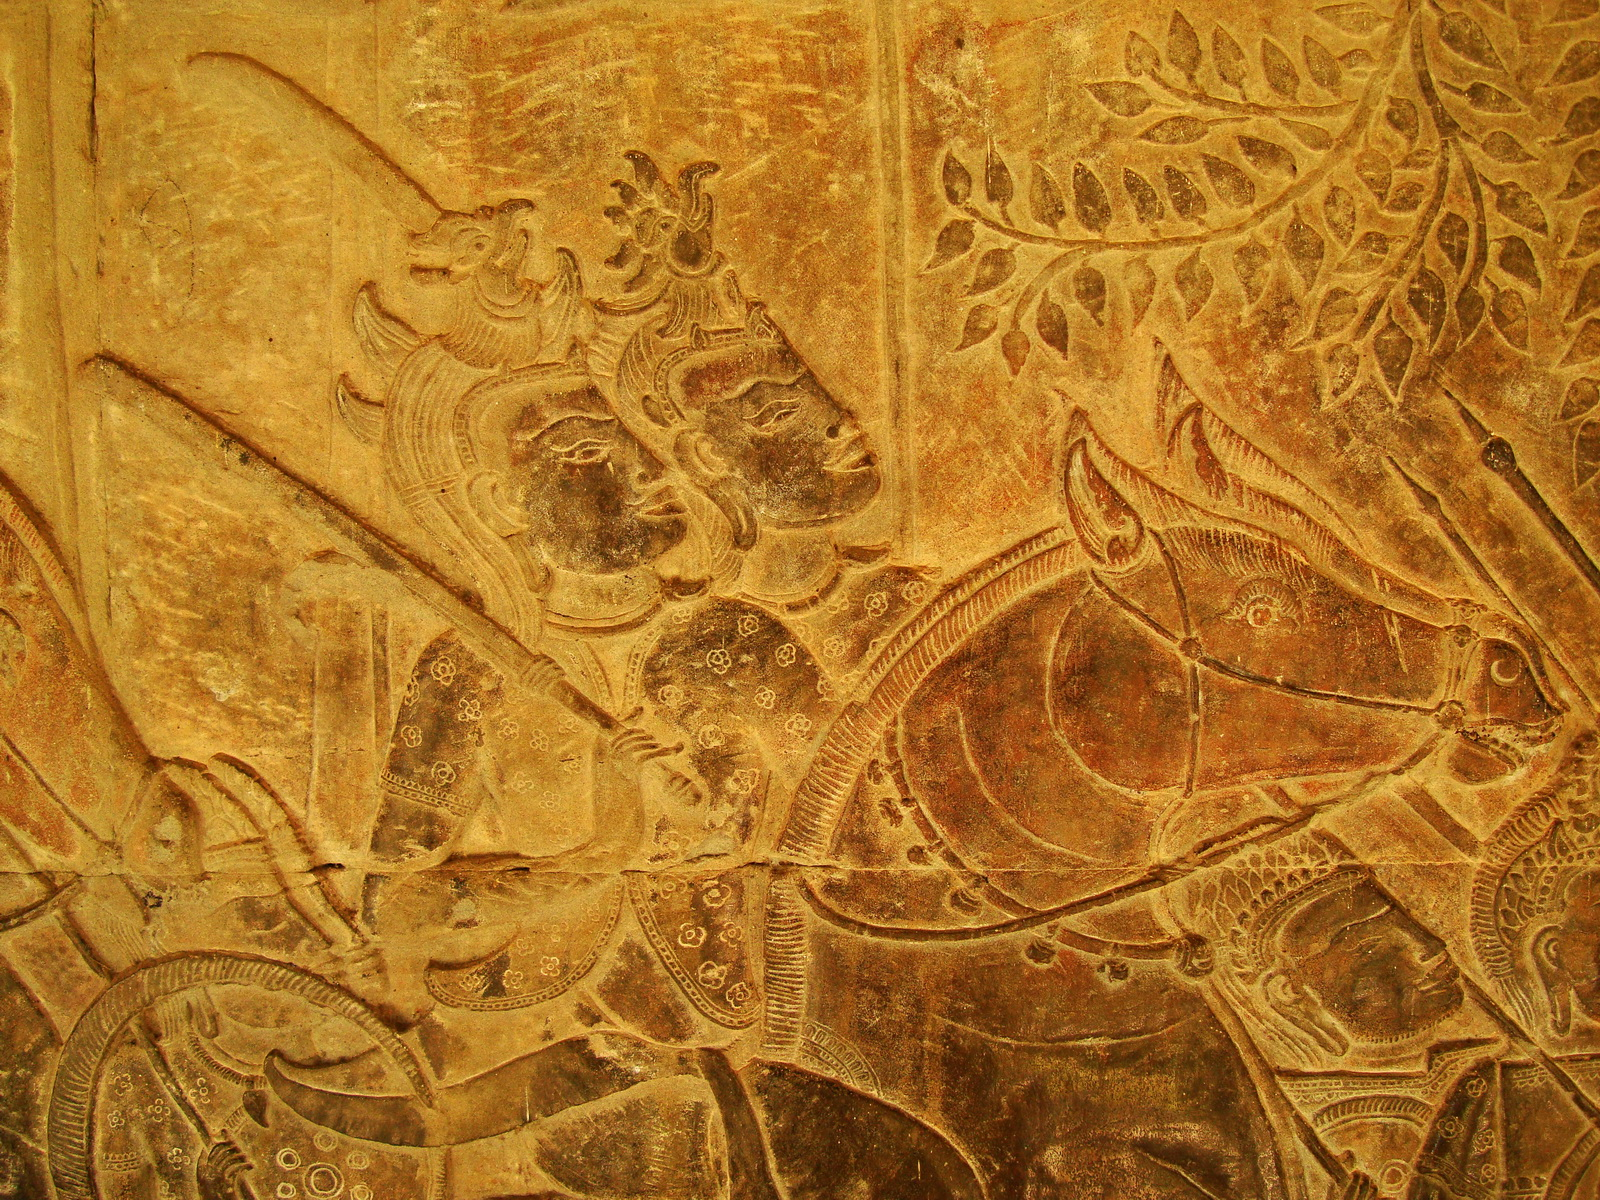 Angkor Wat Bas relief S Gallery W Wing Historic Procession 095